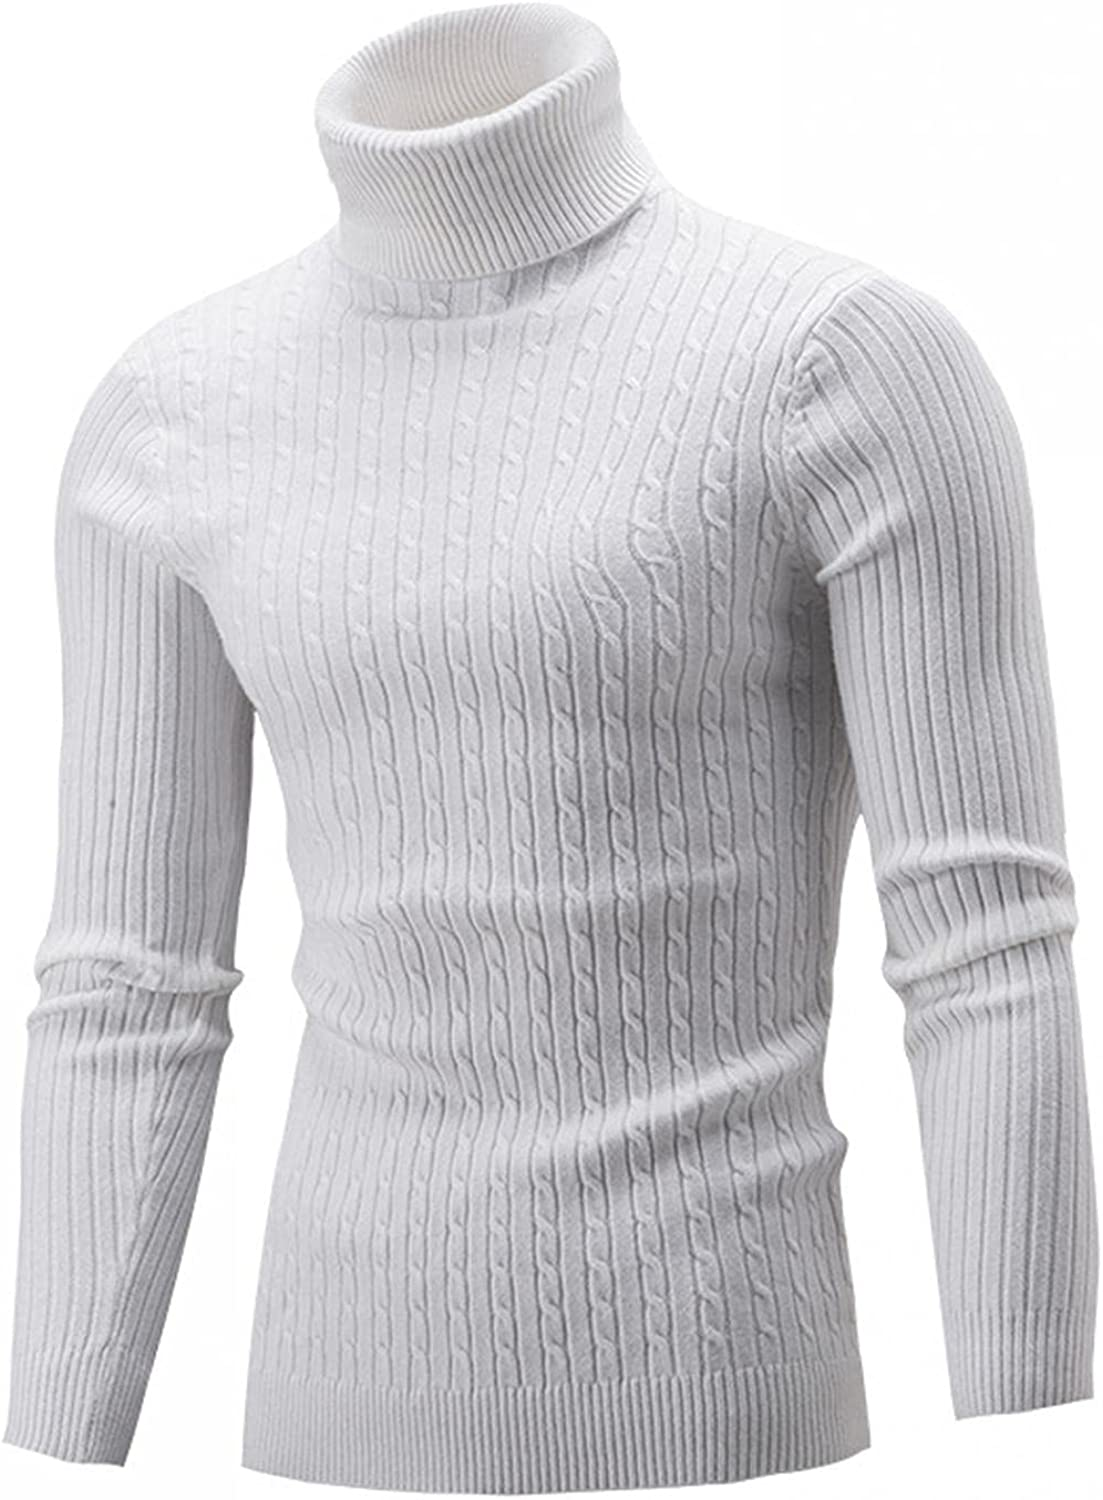 Burband Mens Slim Fit Turtleneck Sweaters Cable Knit Thermal Pullover Sweaters Casual Ribbed Pullover High Neck Sweaters